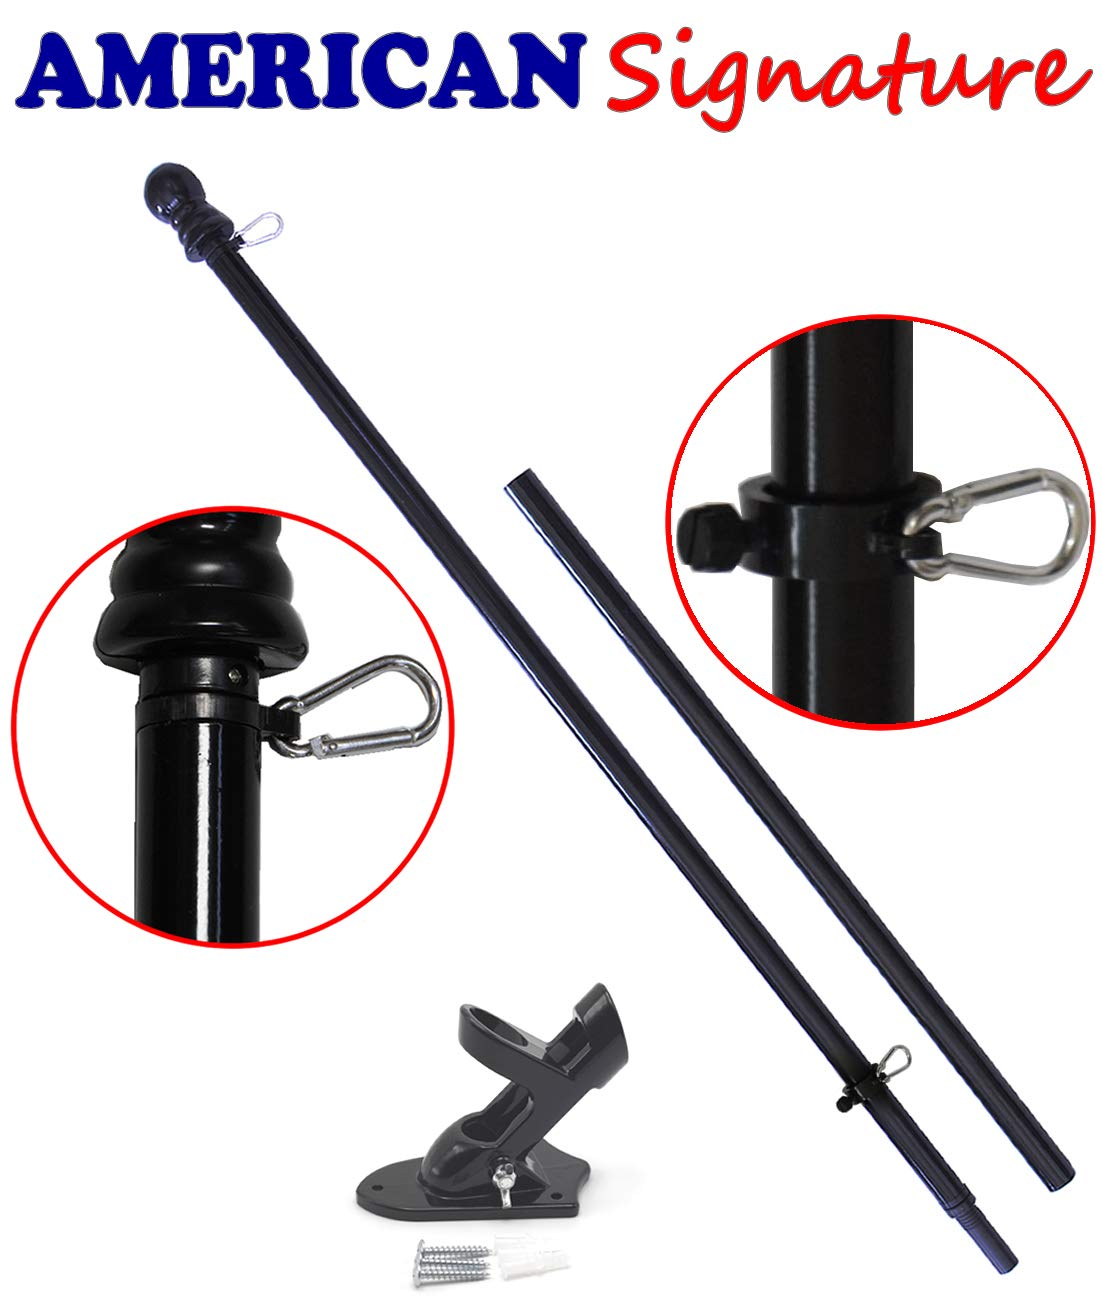 American Signature Flag Pole and Bracket Holder Kit: Includes 2019 New Enhanced Design Aluminum Tangle Free Spinning Flagpole with Carabiners and Outdoor Wall Mount Bracket (Black, 5')